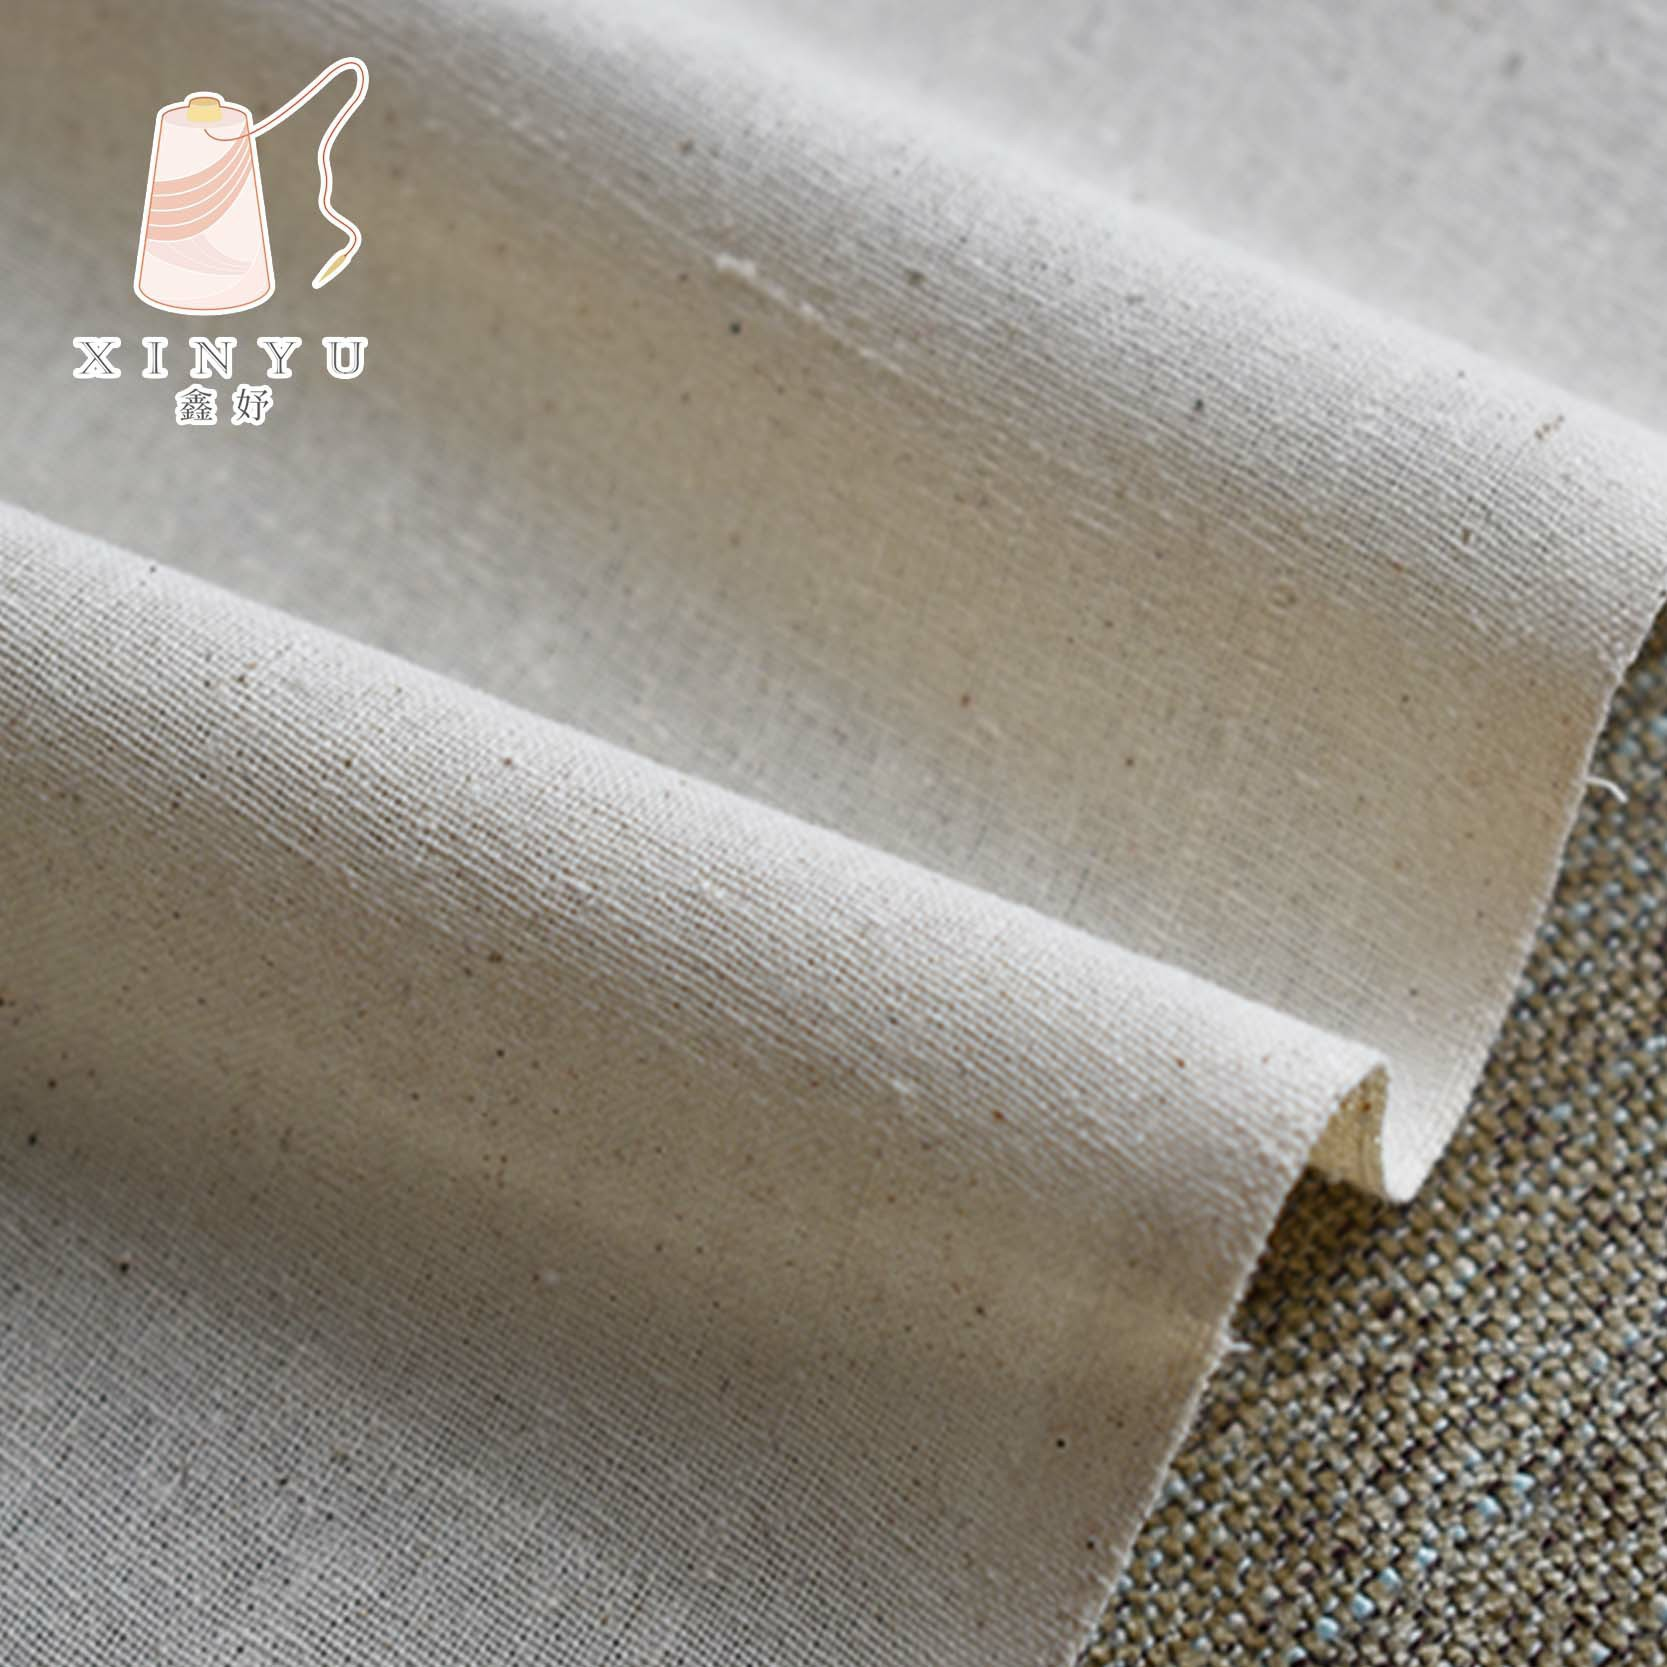 XINHAO Thickened white fabric, cotton homespun, student proofing clothing design, standing cut cloth